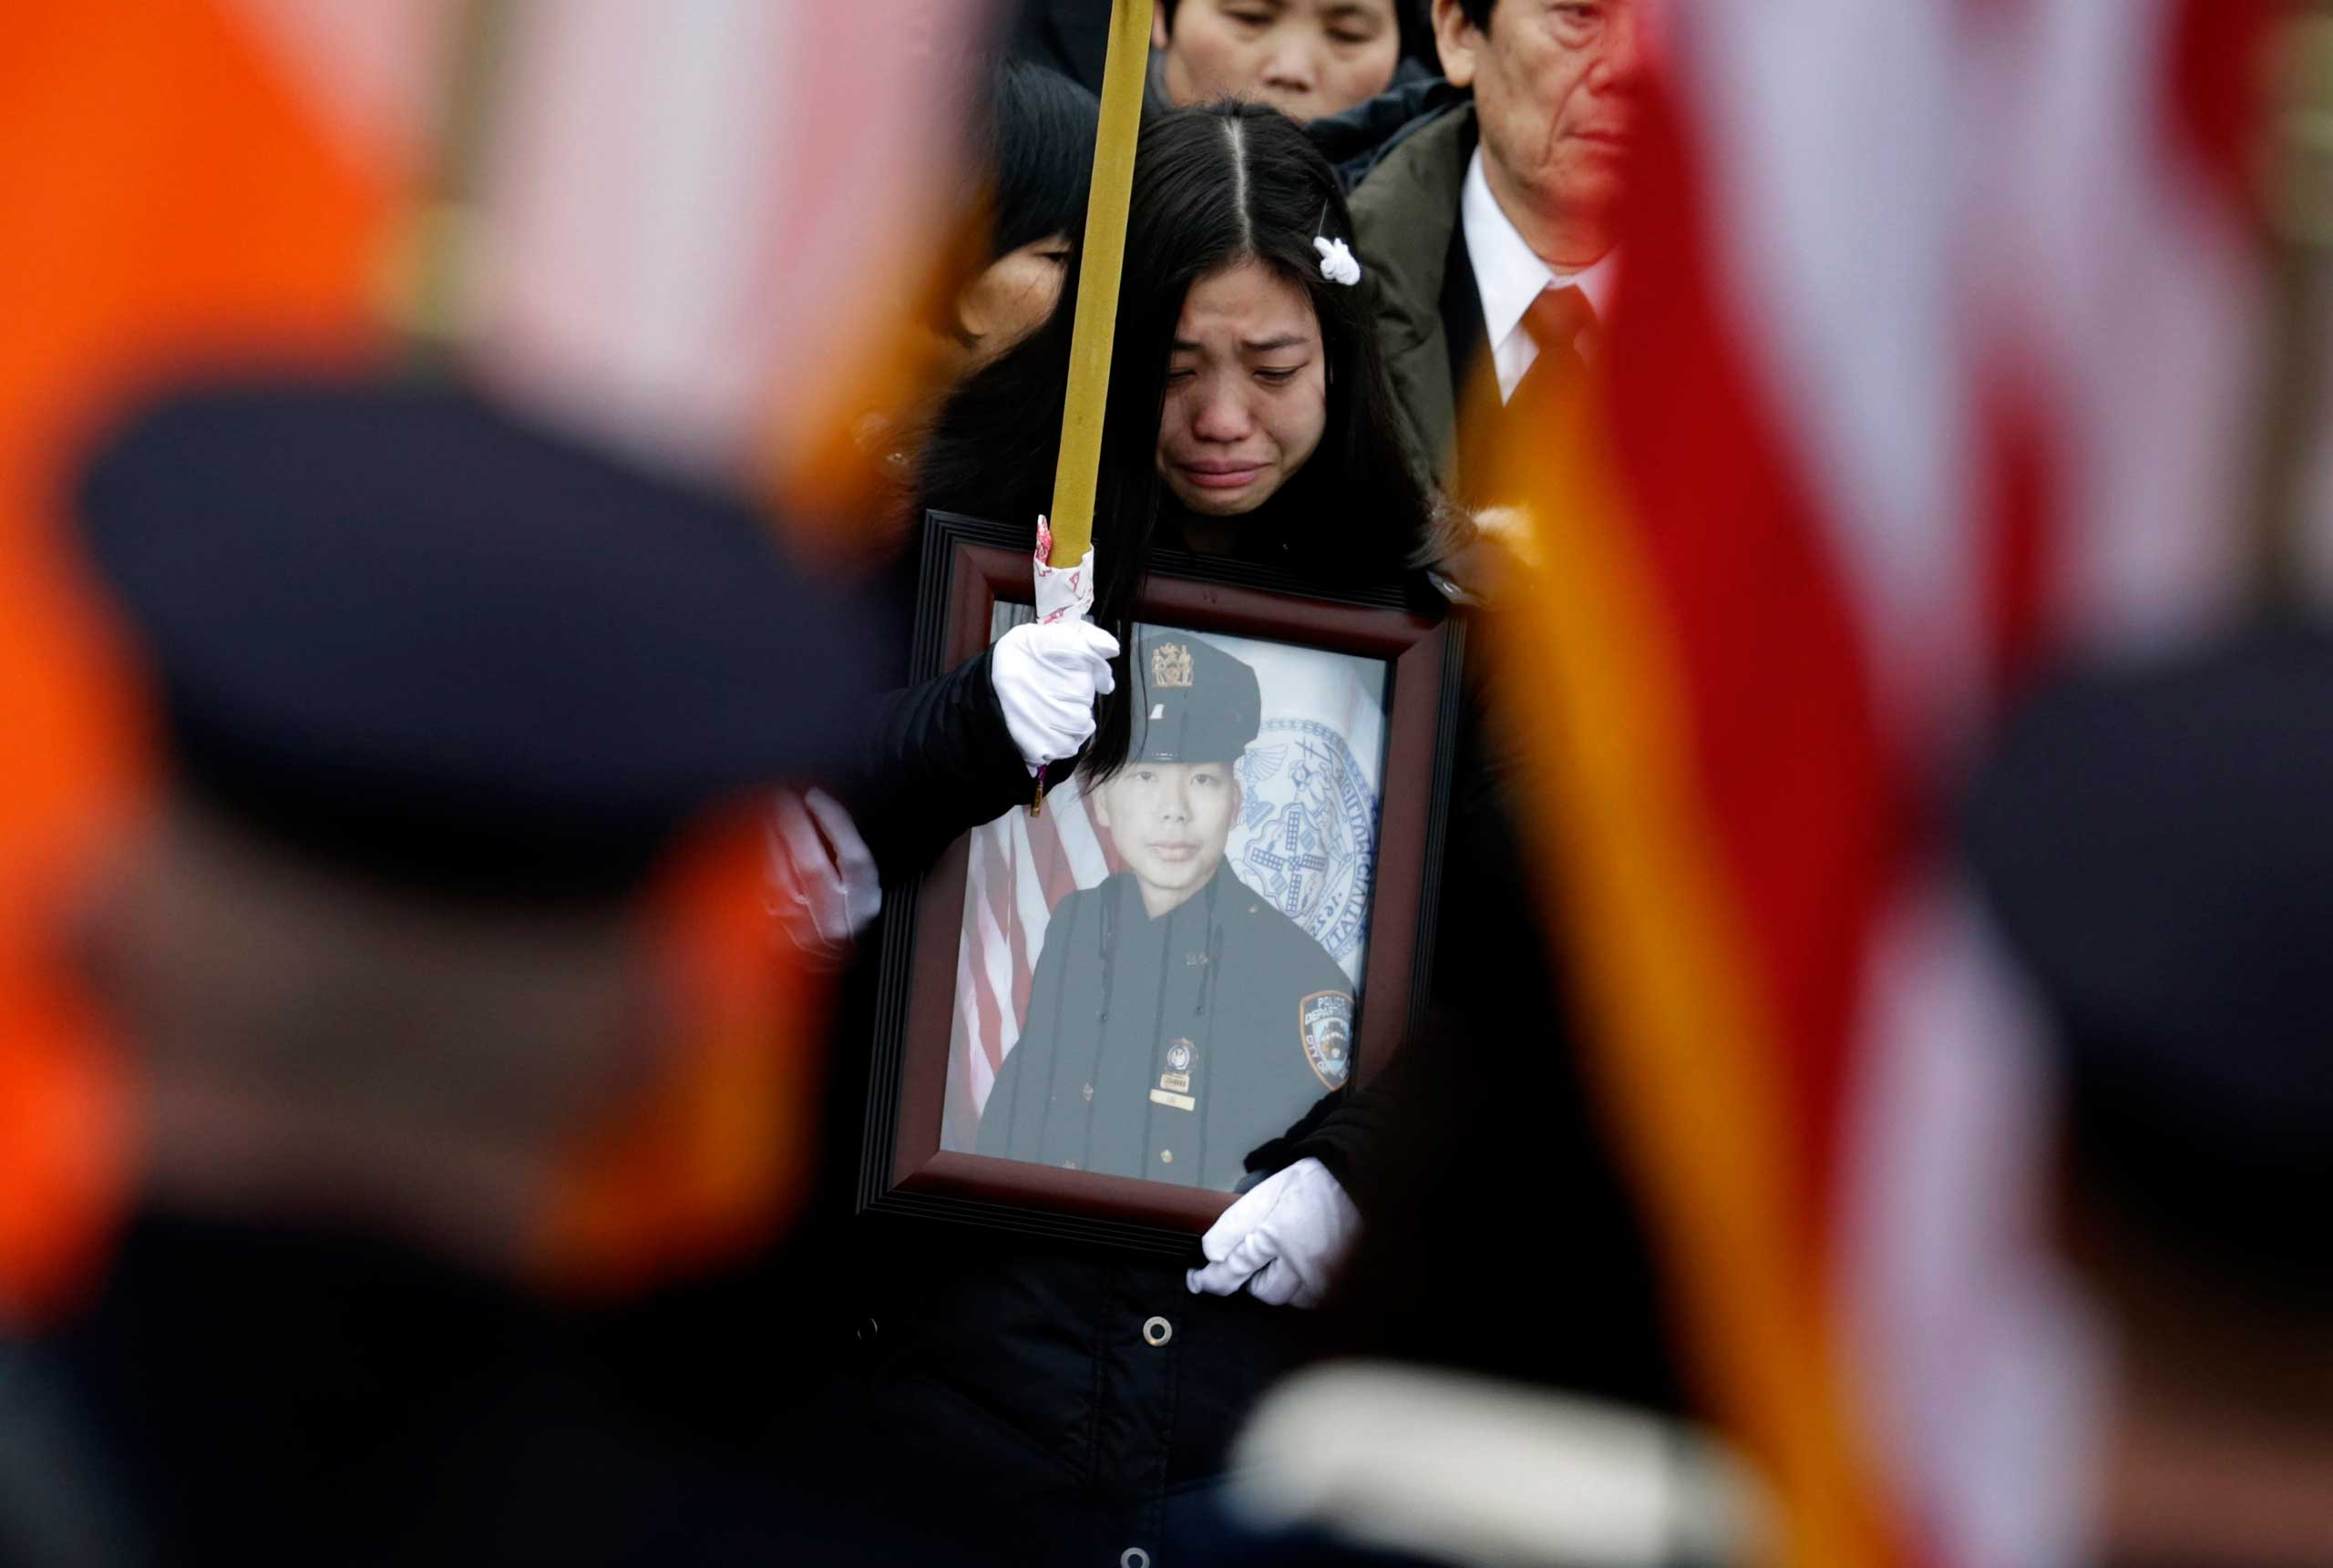 Widow Pei Xia Chen holds a photo of slain New York Police Department officer Wenjian Liu as his casket departs his funeral in the Brooklyn borough of New York on Jan. 4, 2015.